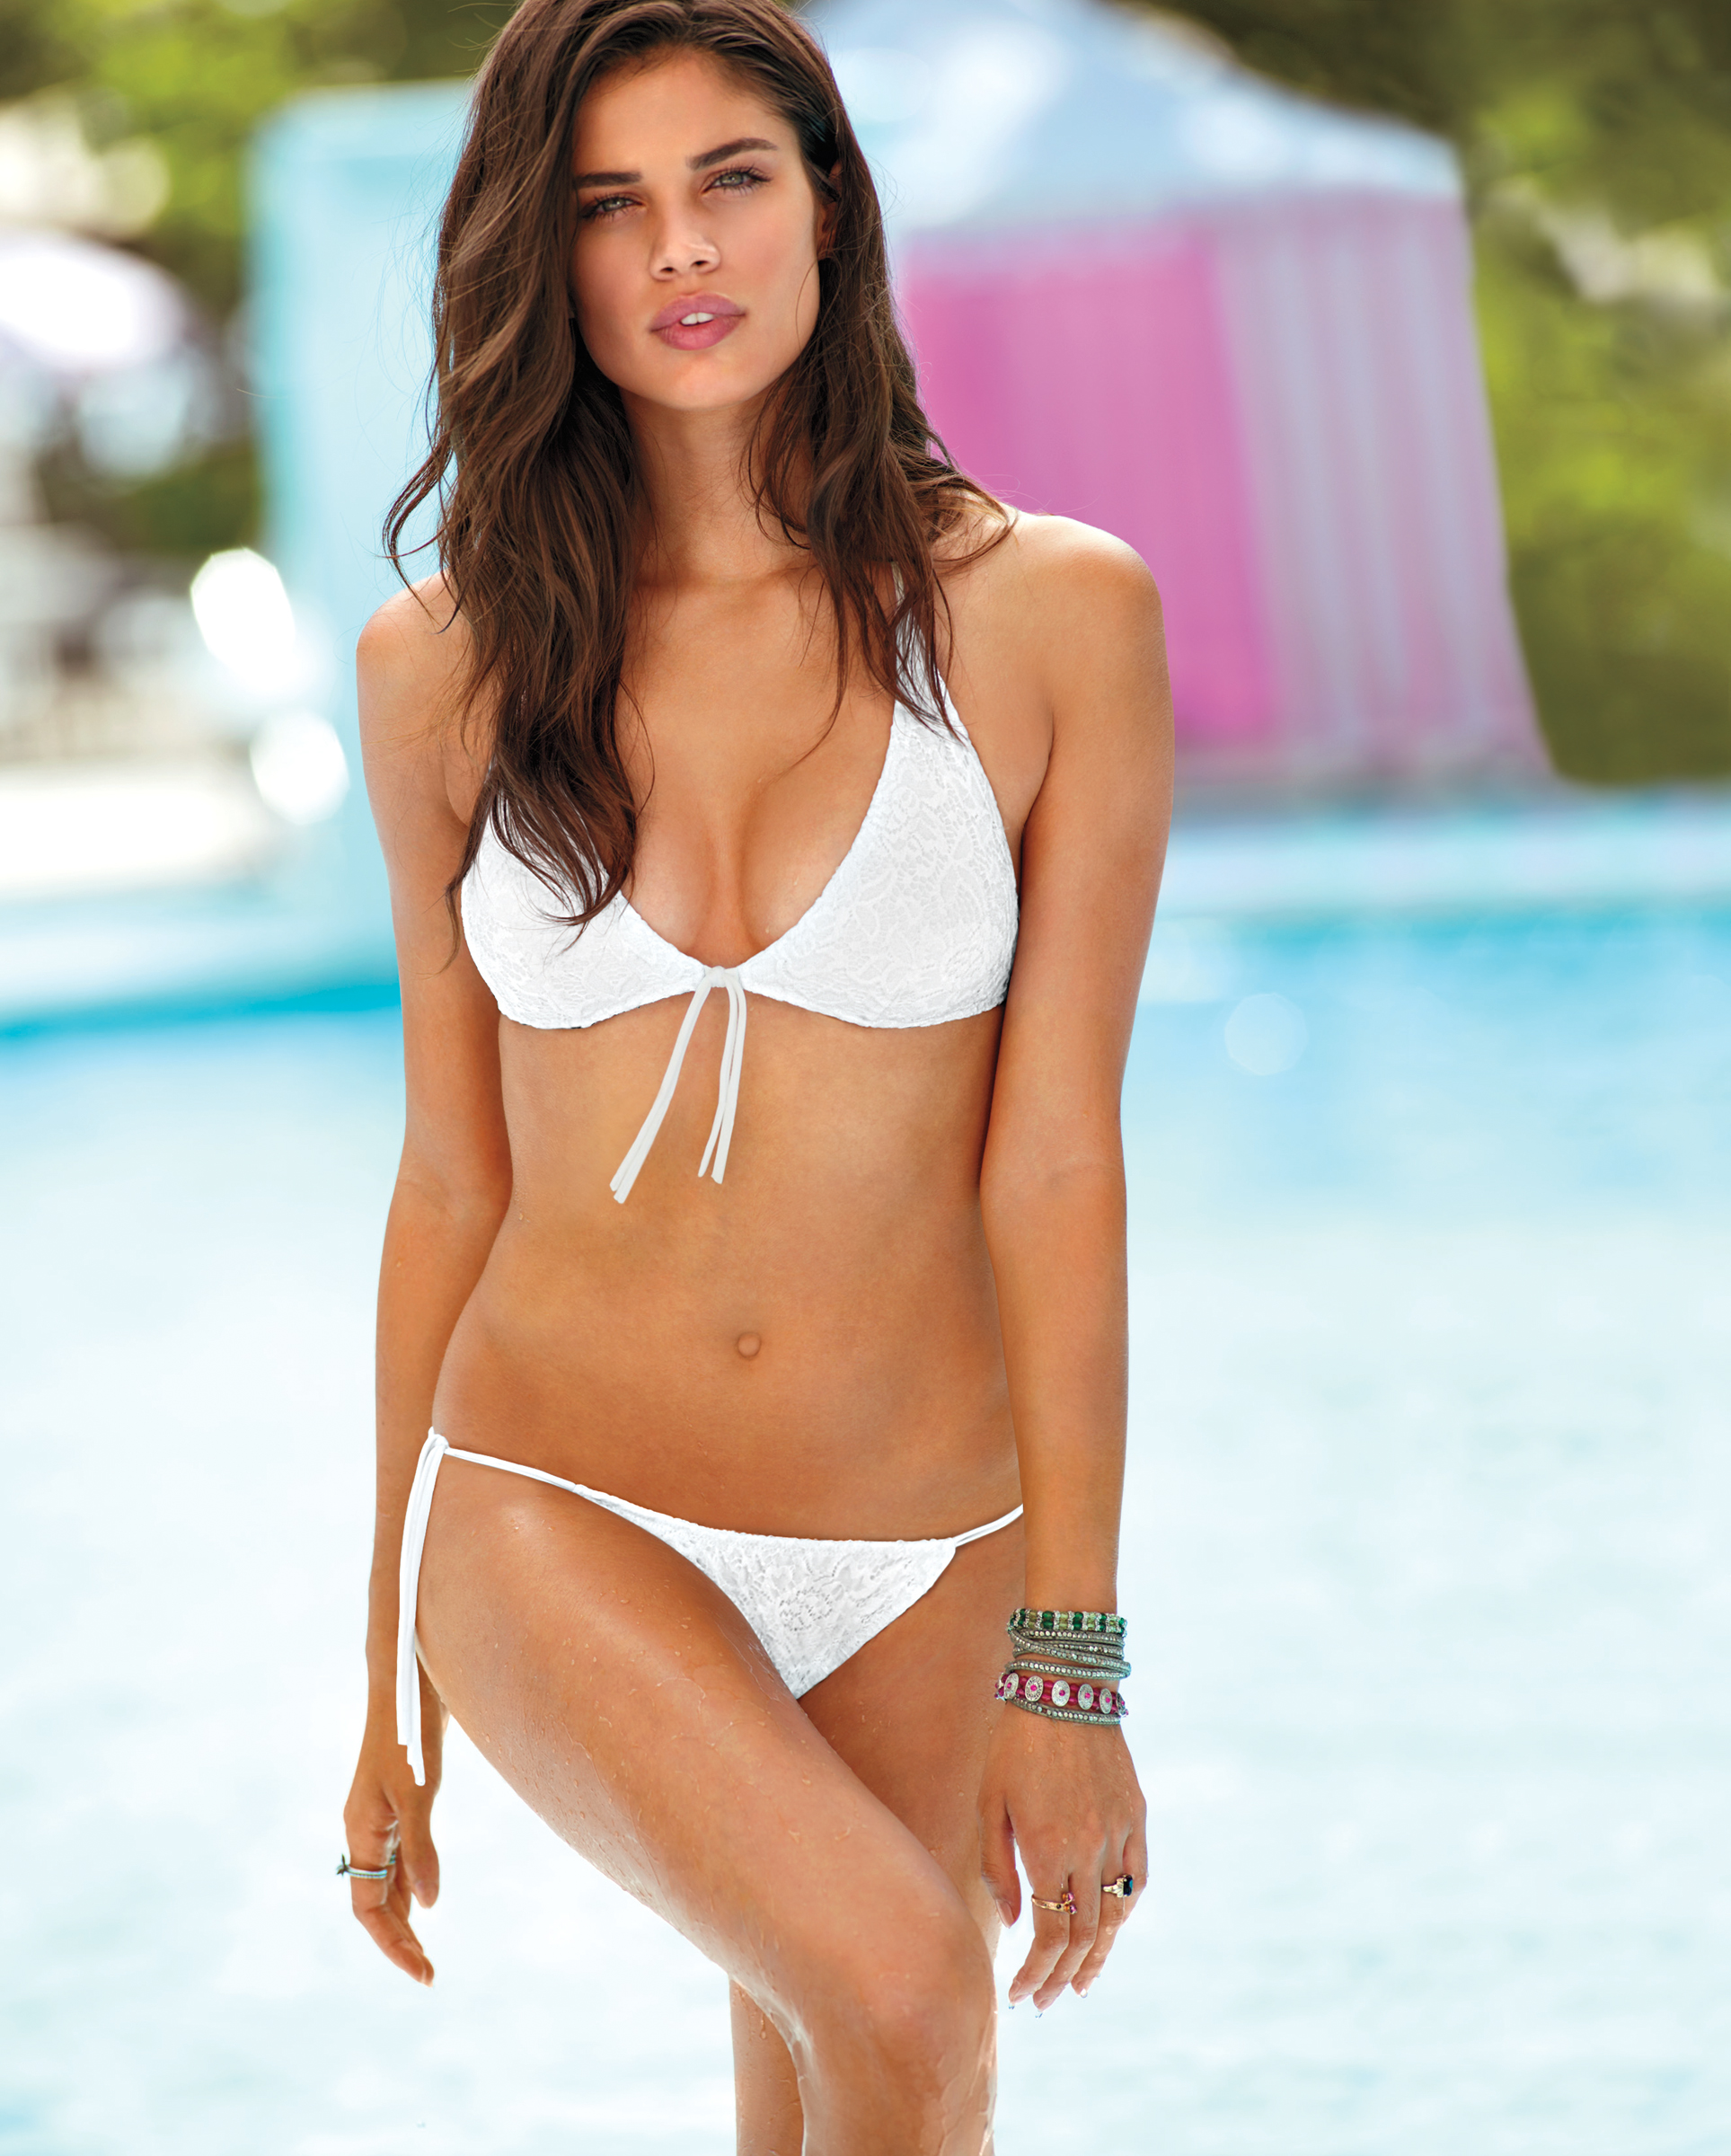 Sara Sampaio with Bikini Pic 28 of 35